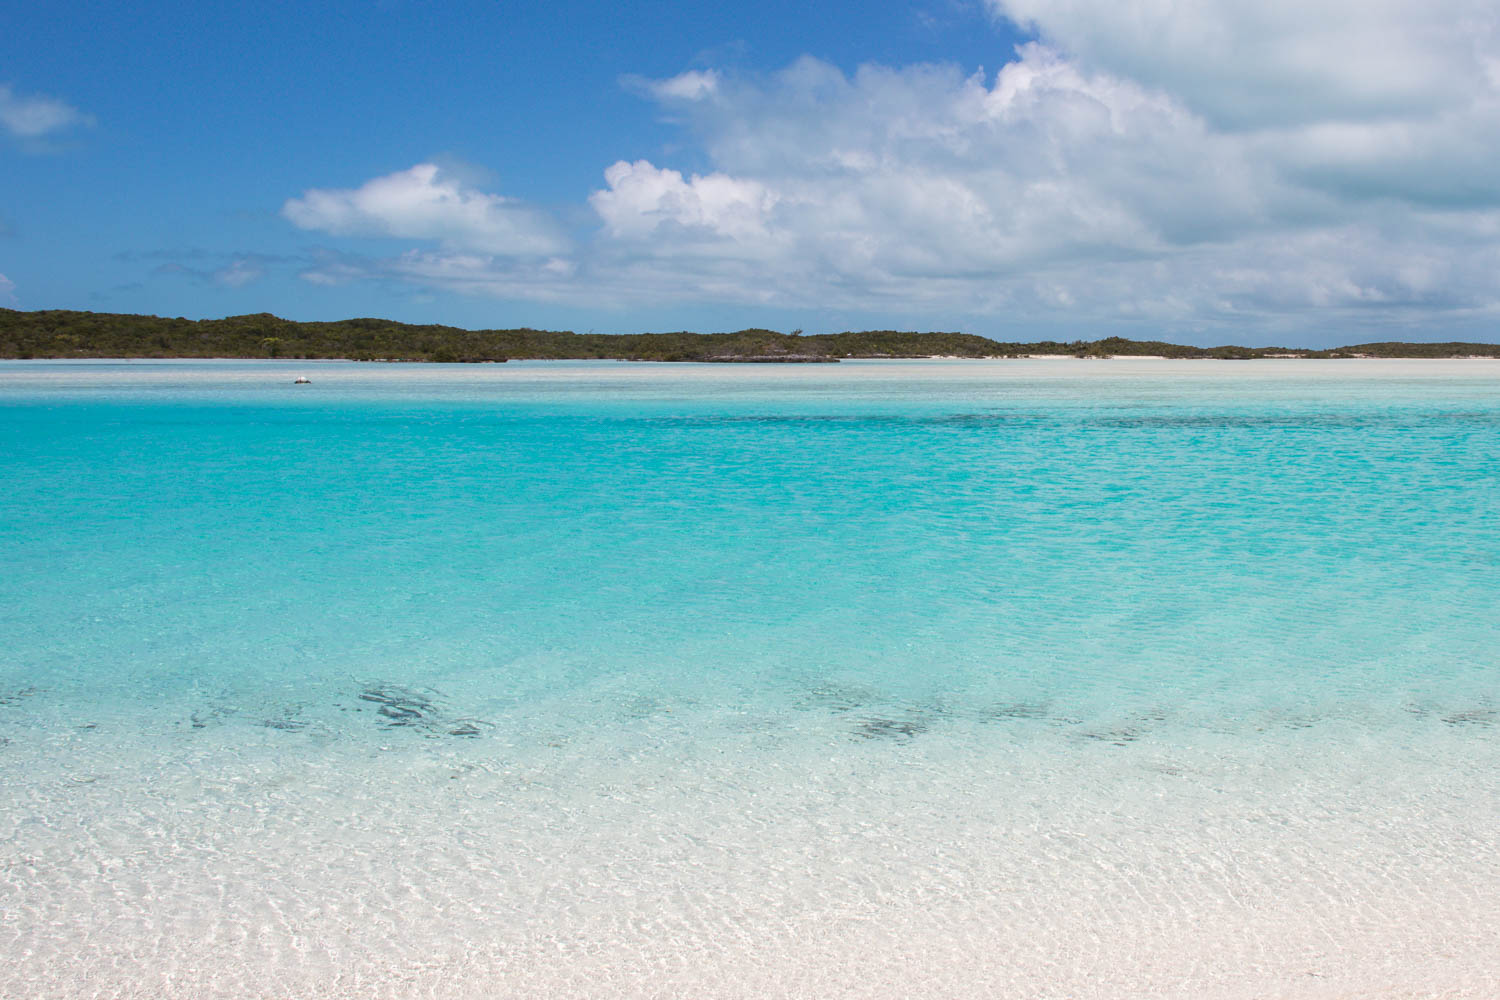 Exuma Cays Sand Bar at Pipe Creek is a short boat ride from Compass Cay. Visit the best Bahamas Sand Bar on a Bahamas Day Trip from Nassau or Florida.